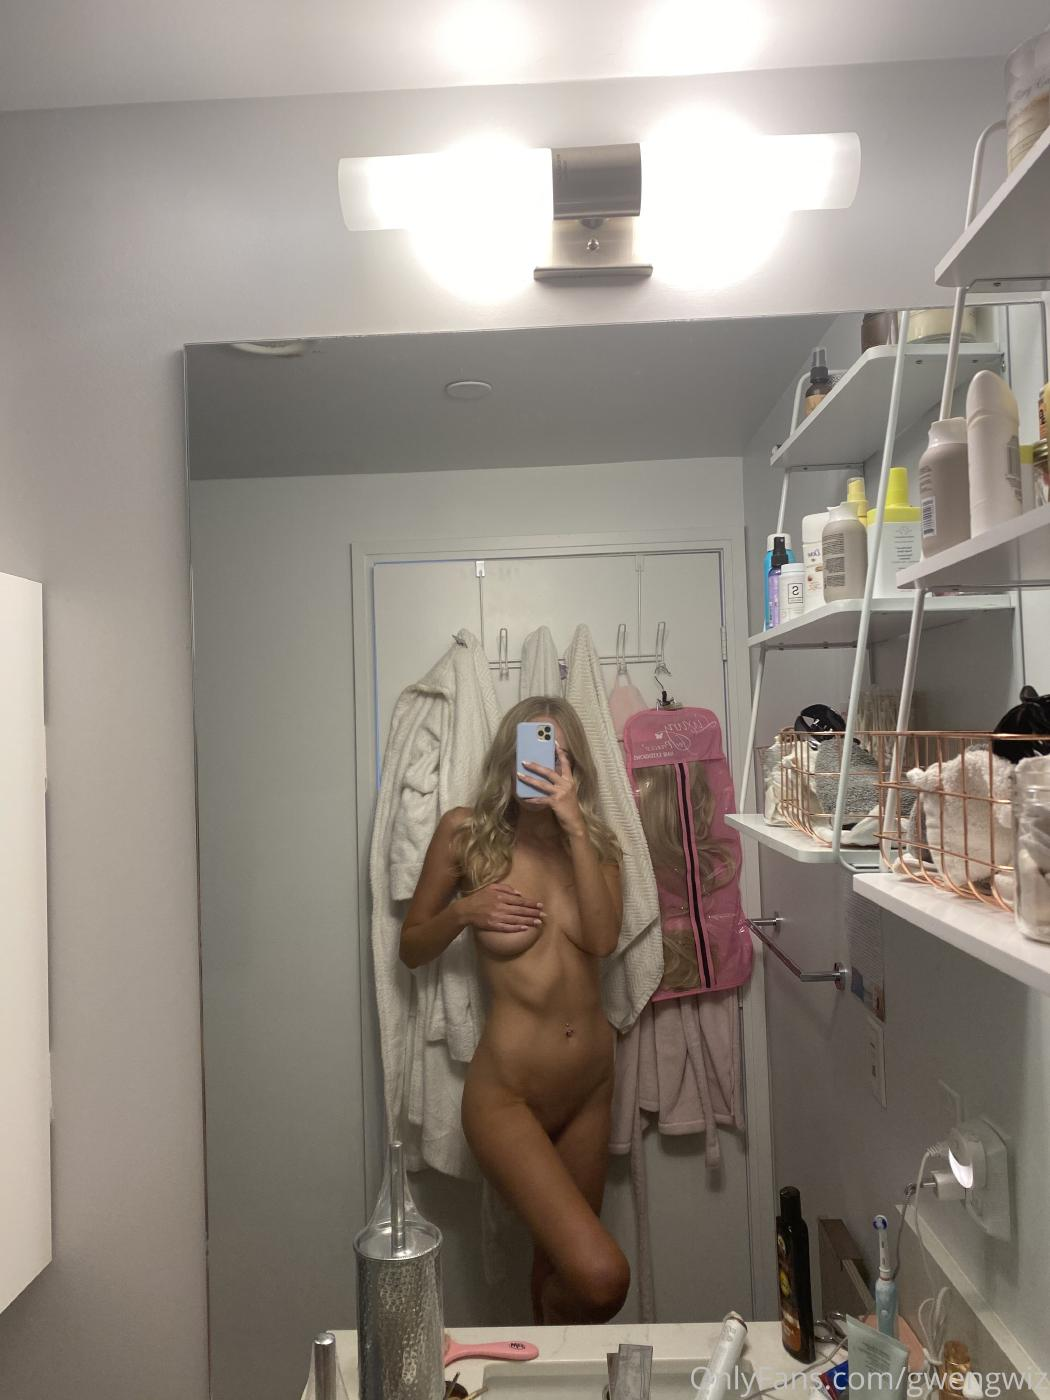 Gwengwiz Nude Onlyfans Collection Leaked 0008